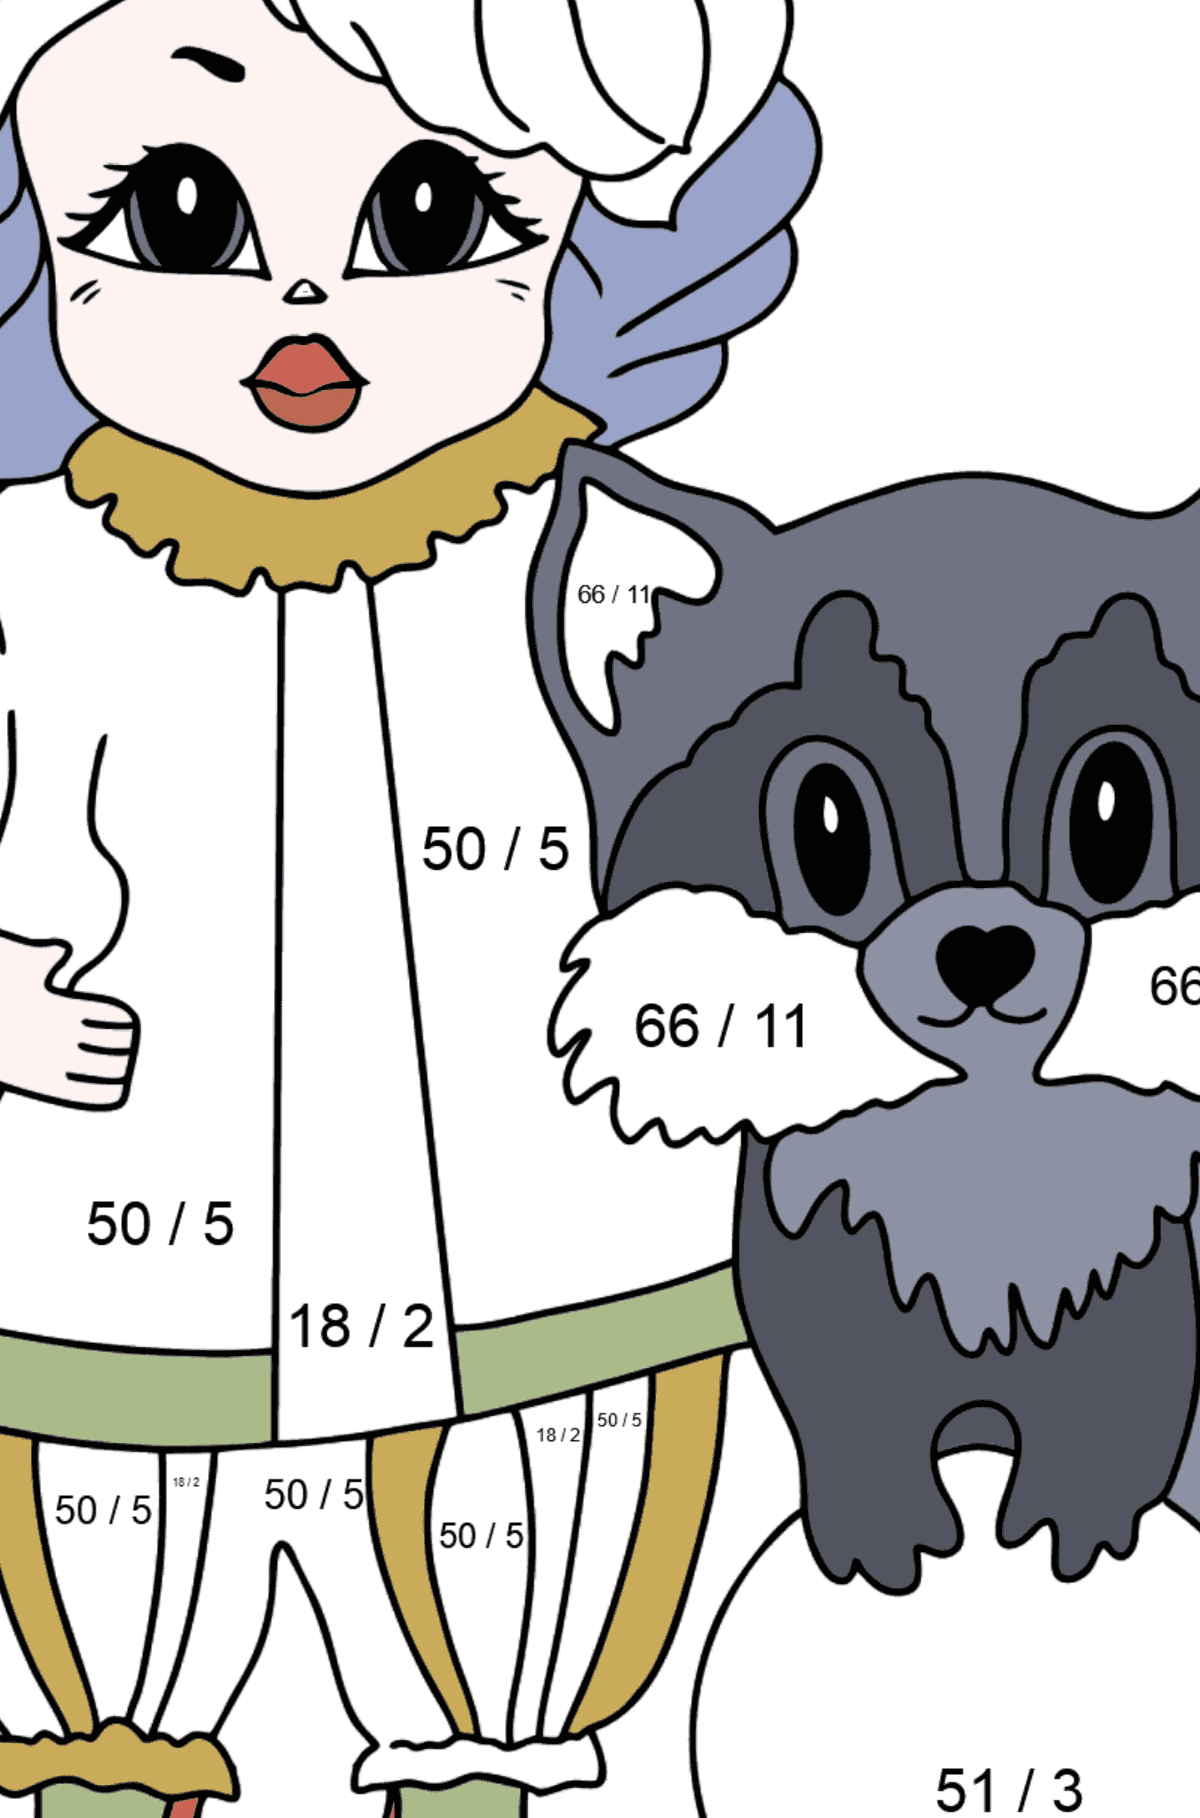 Coloring Page - A Princess with a Cat and a Racoon - For Girls - Math Coloring - Division for Kids